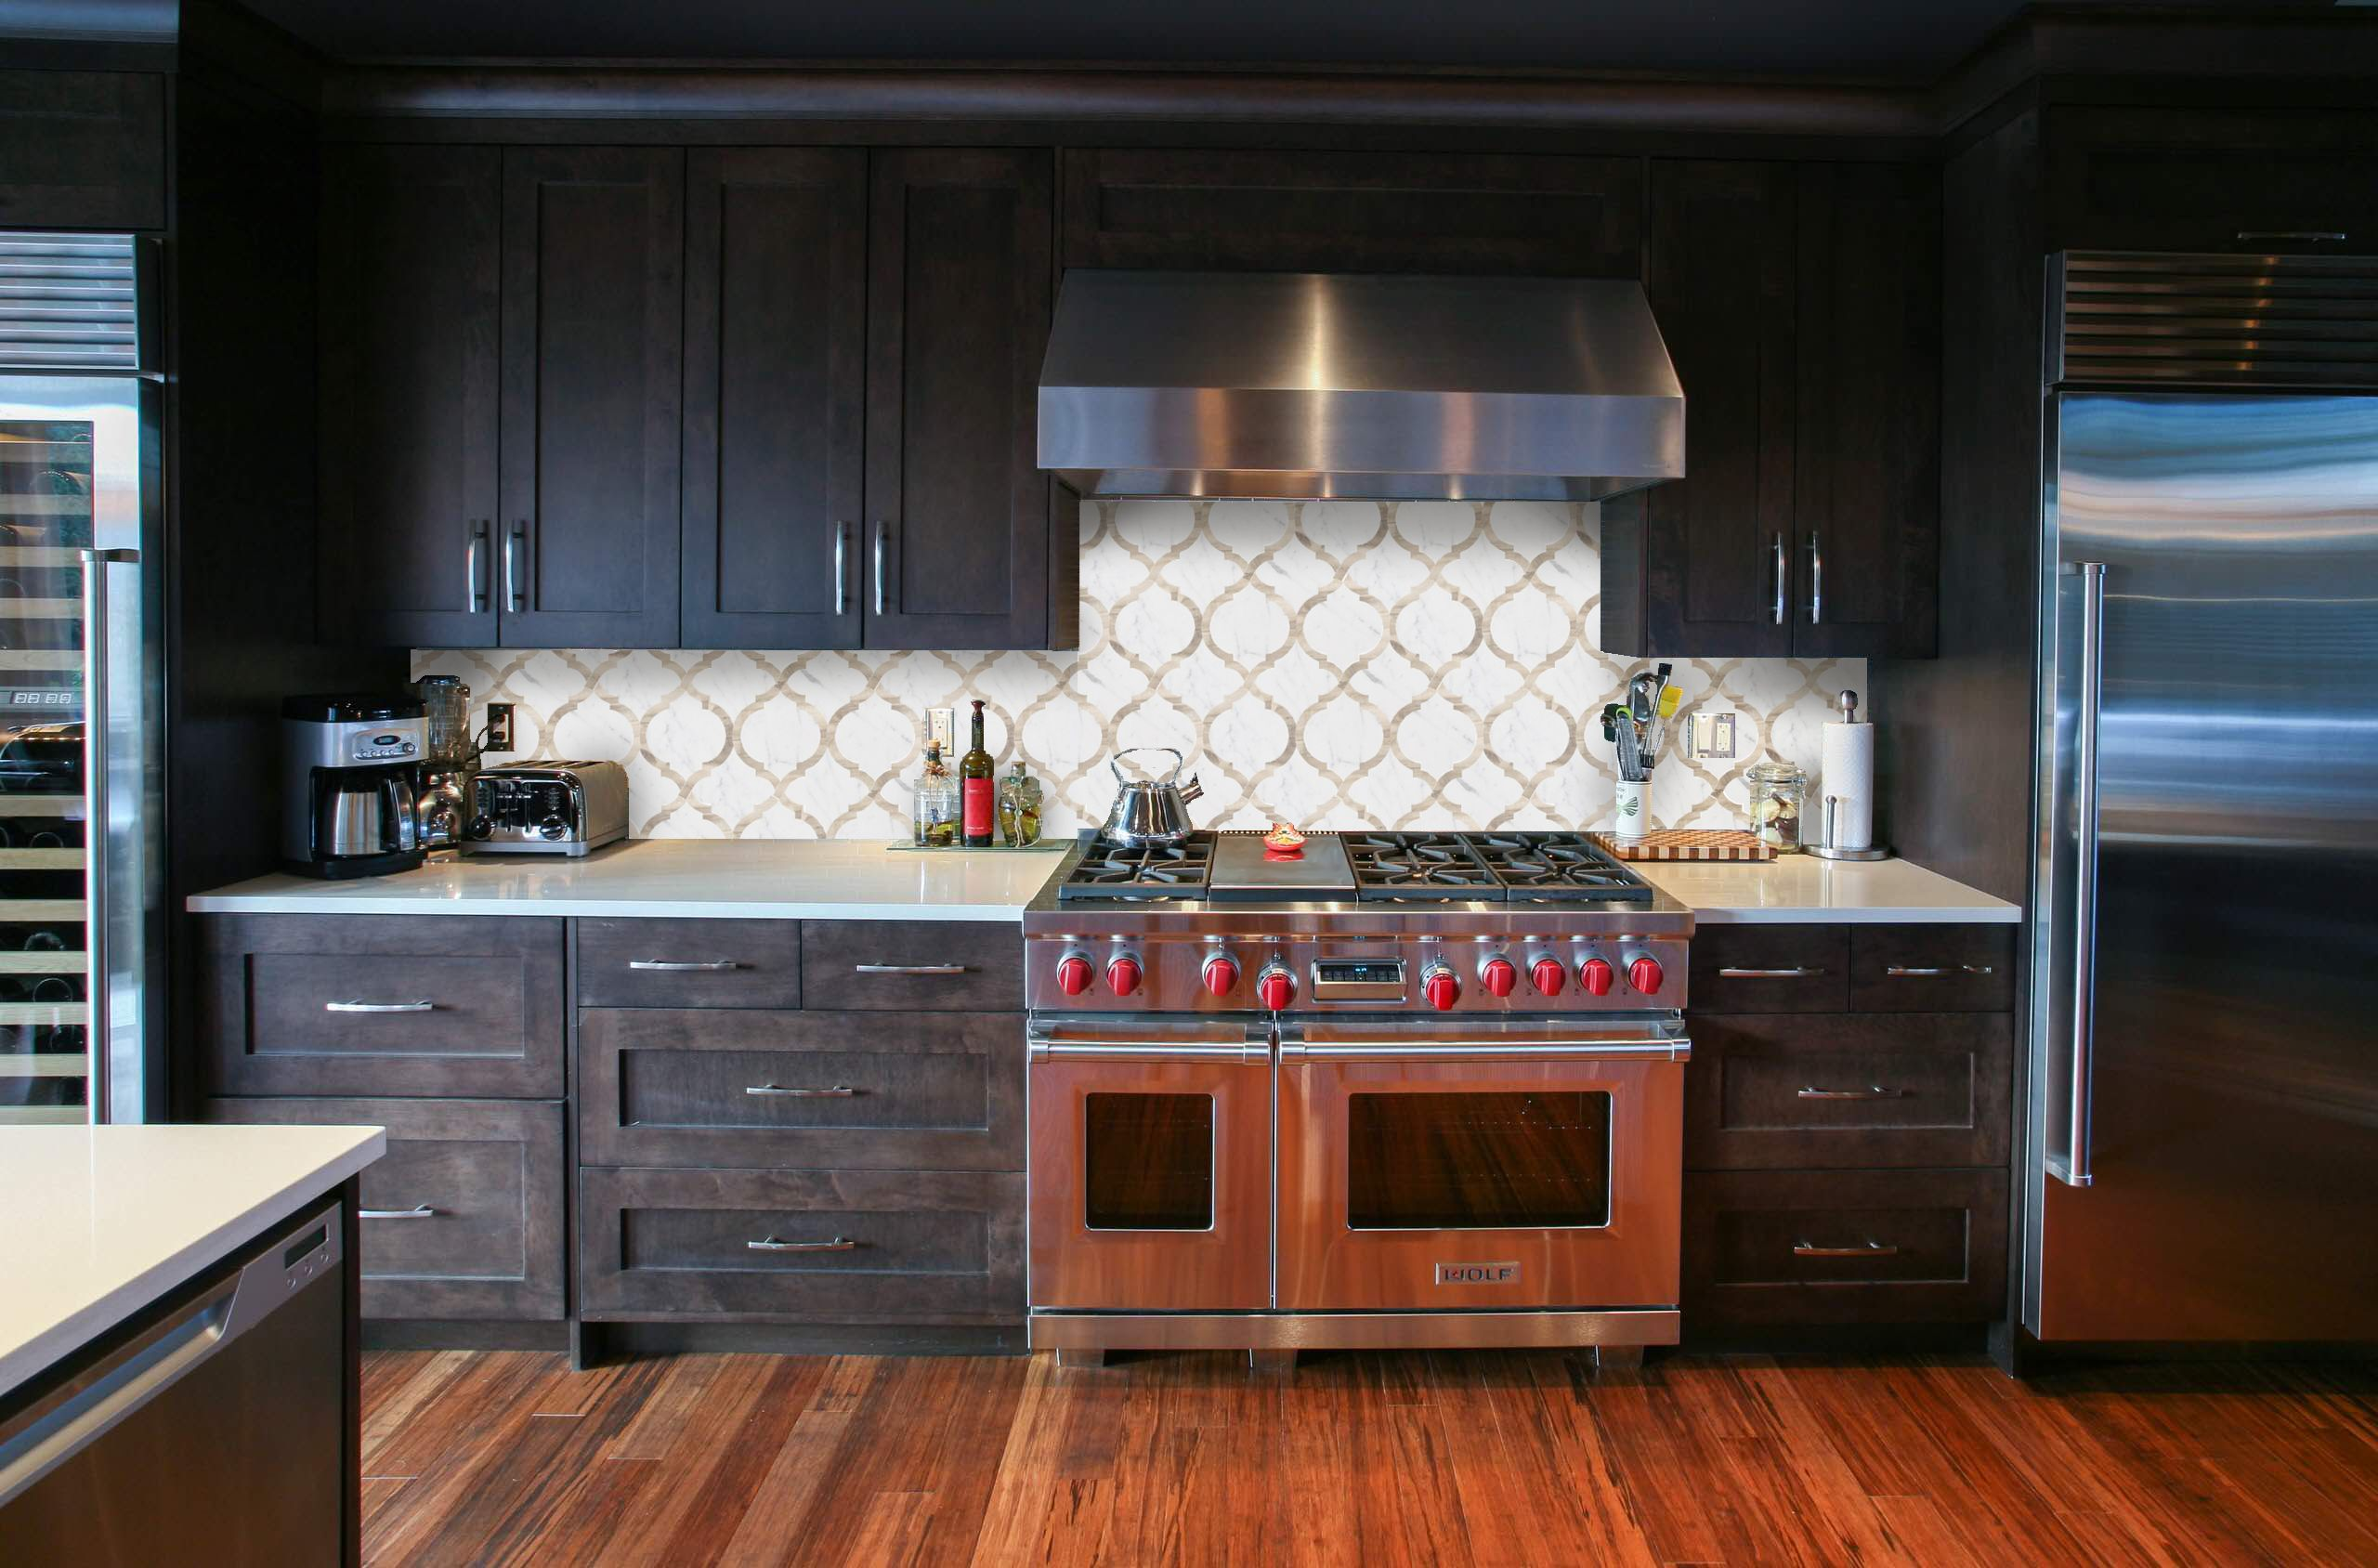 Kitchen Backsplash Dark Wood Cabinets arabesque tile design. kitchen backsplash. waterjet. water jet